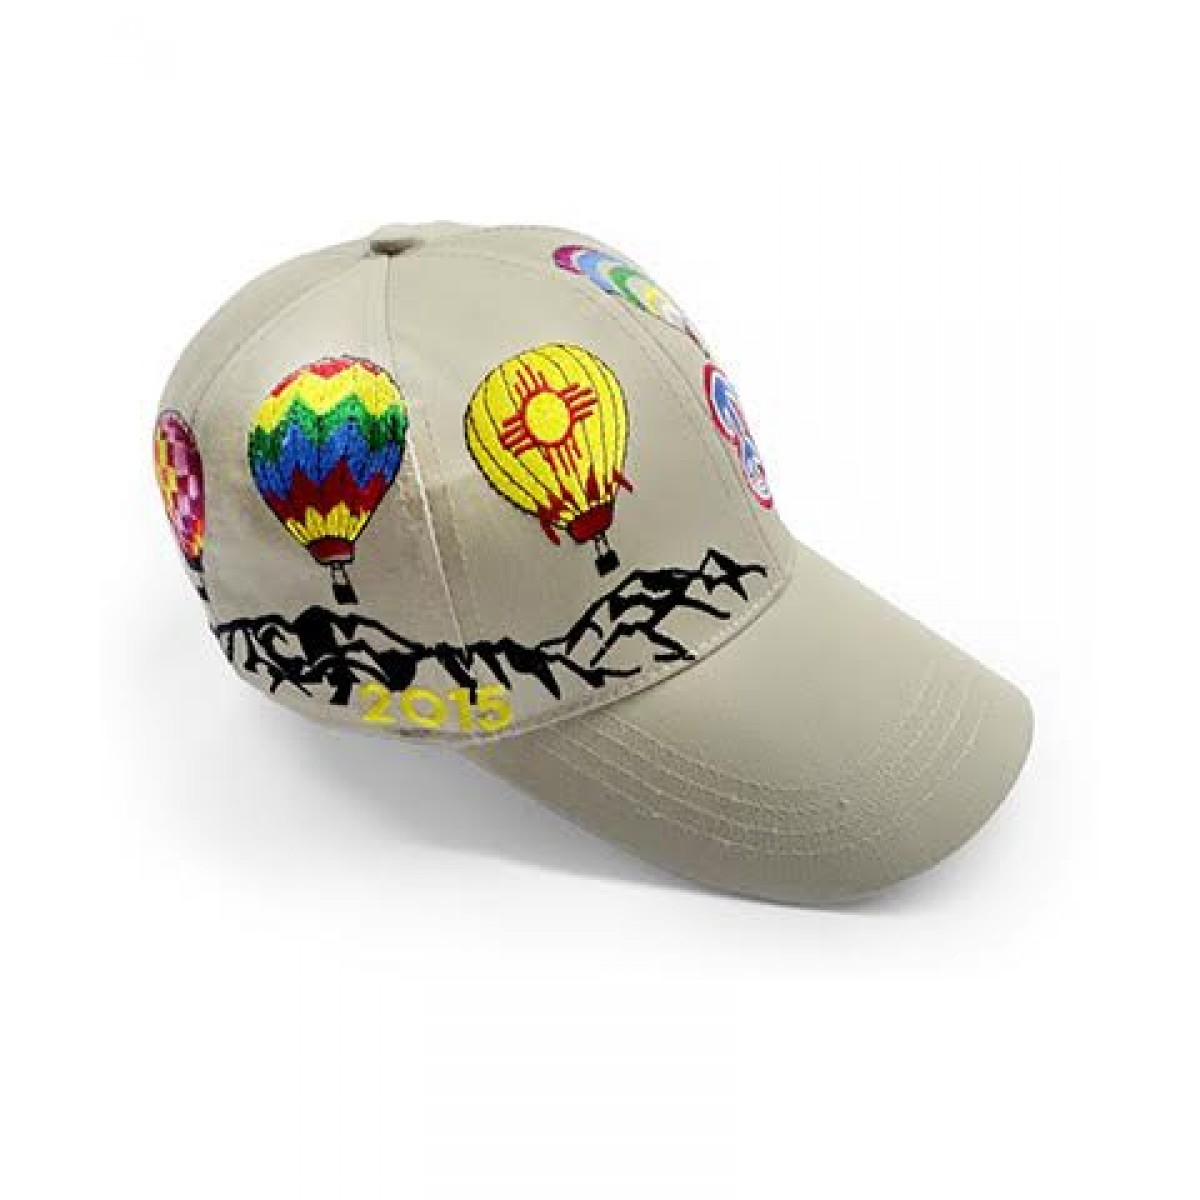 AIBF Embroidered Cap